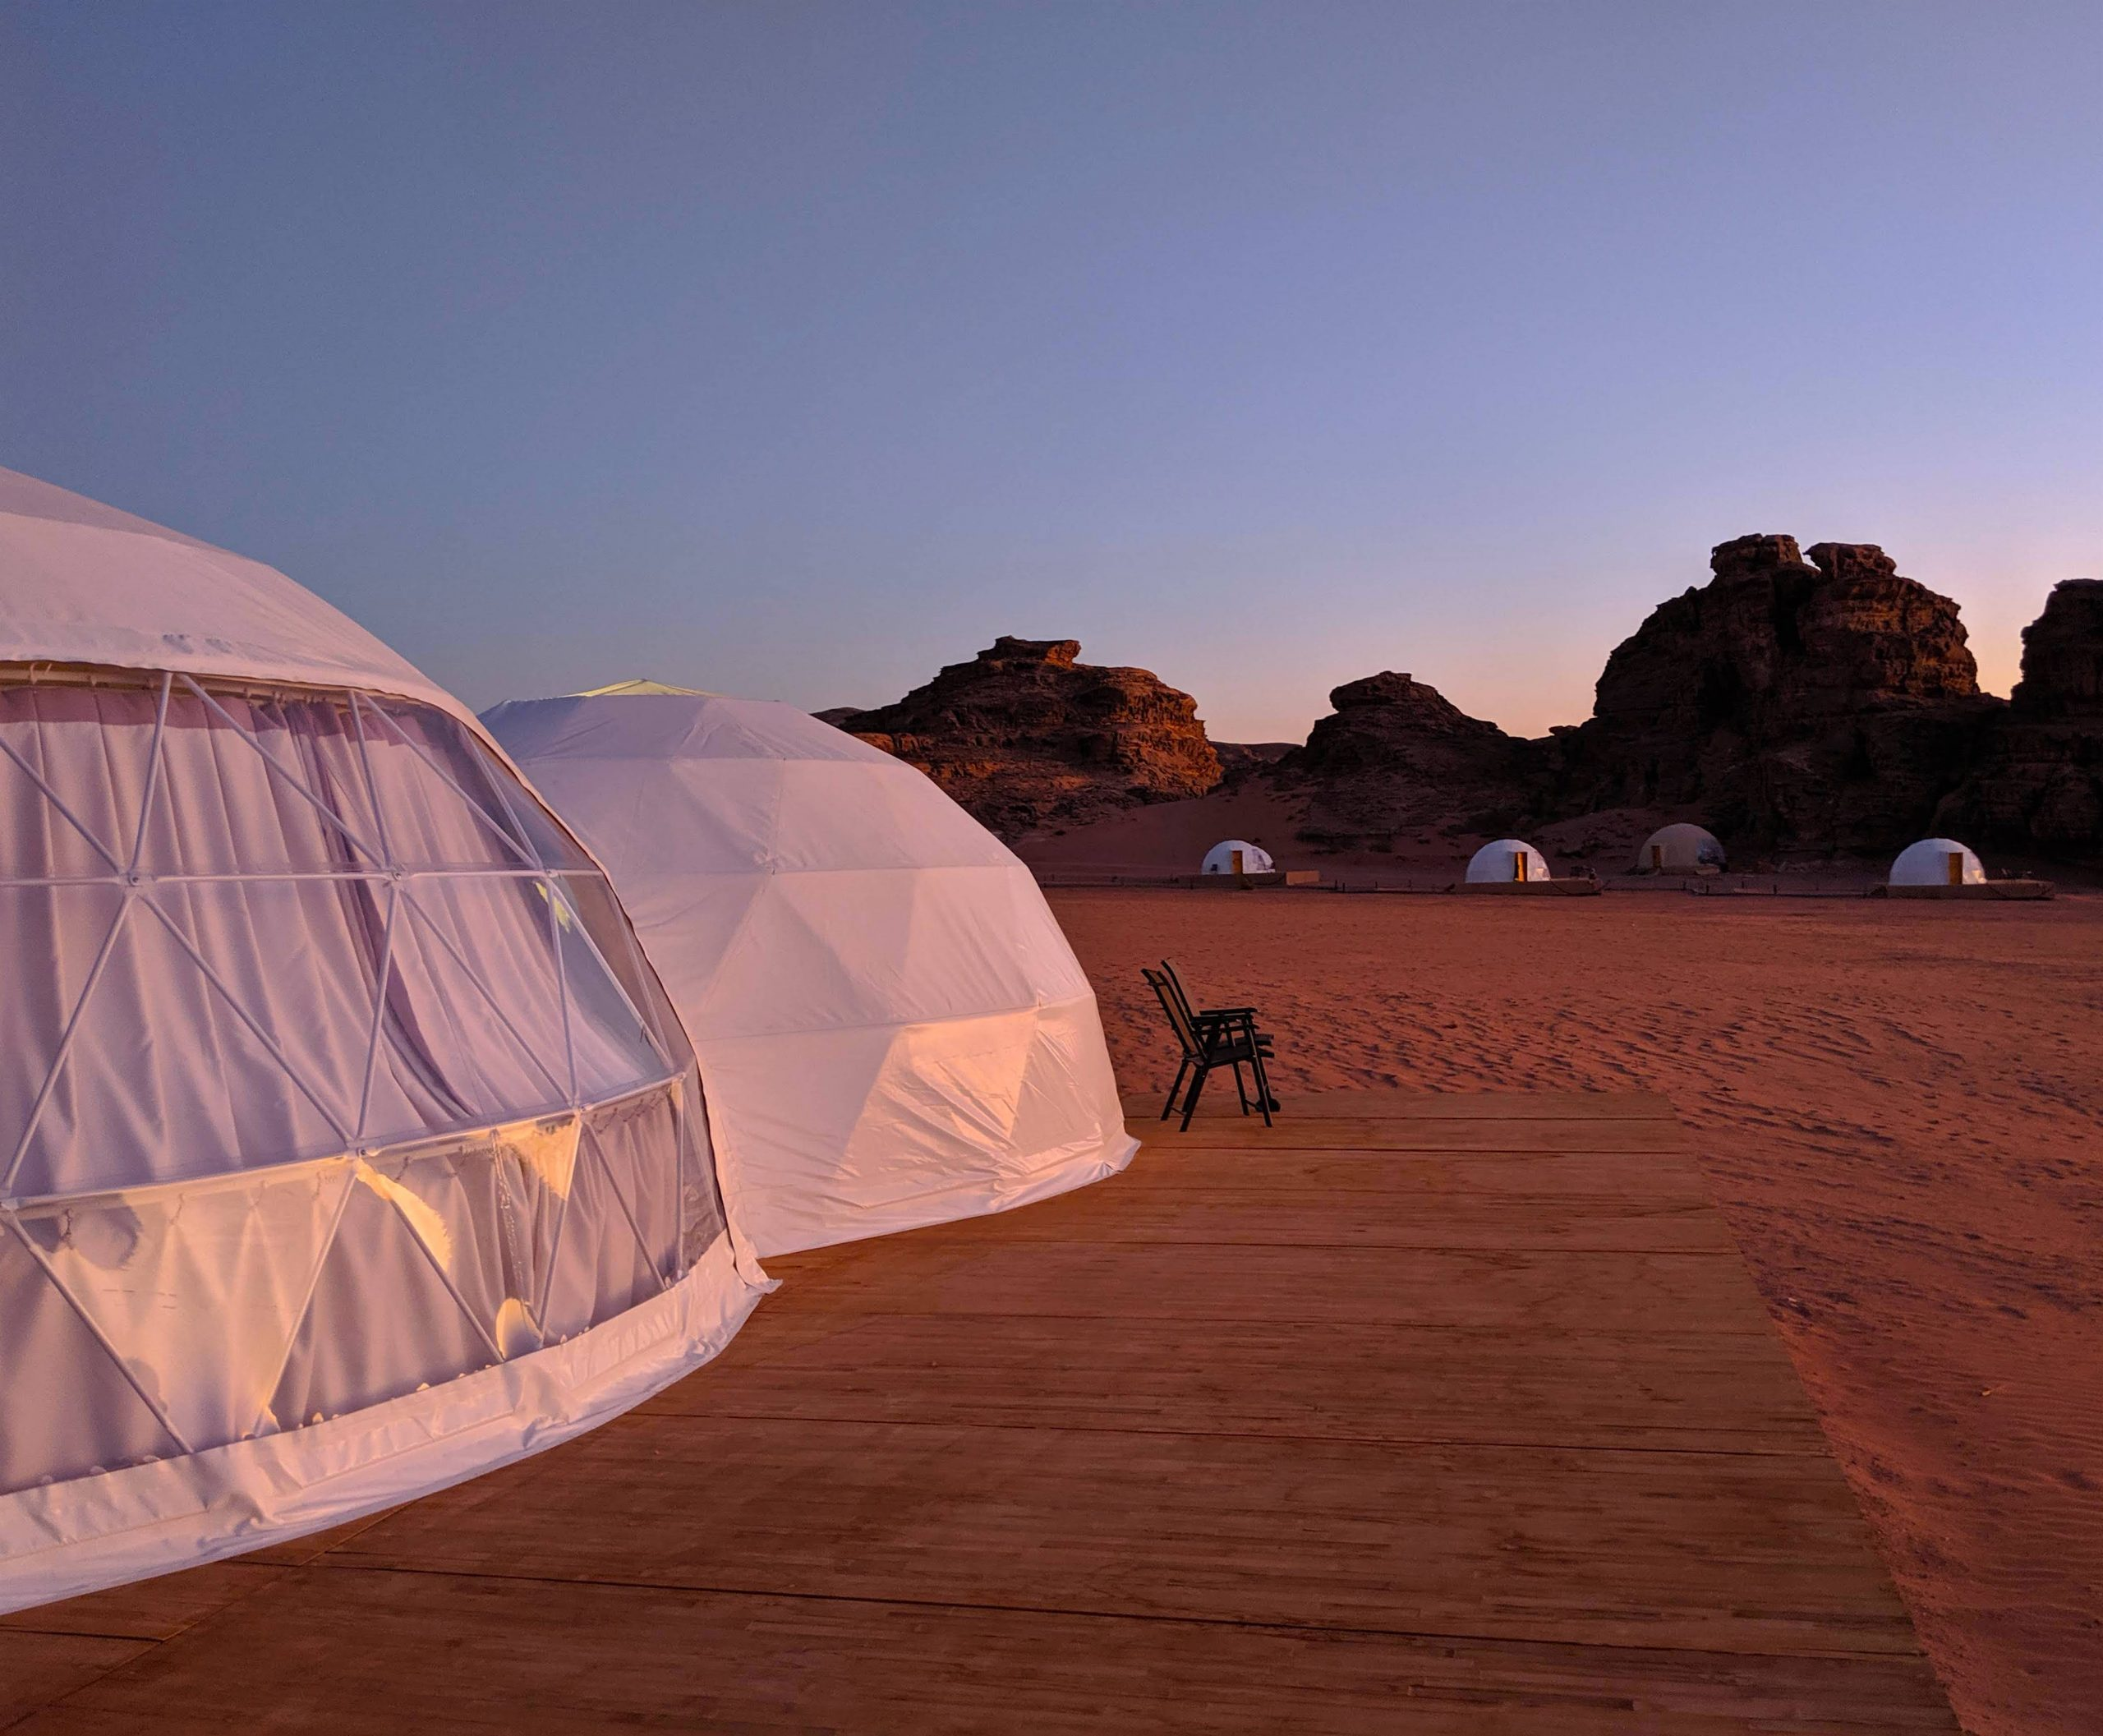 Bubble hotel in the desert